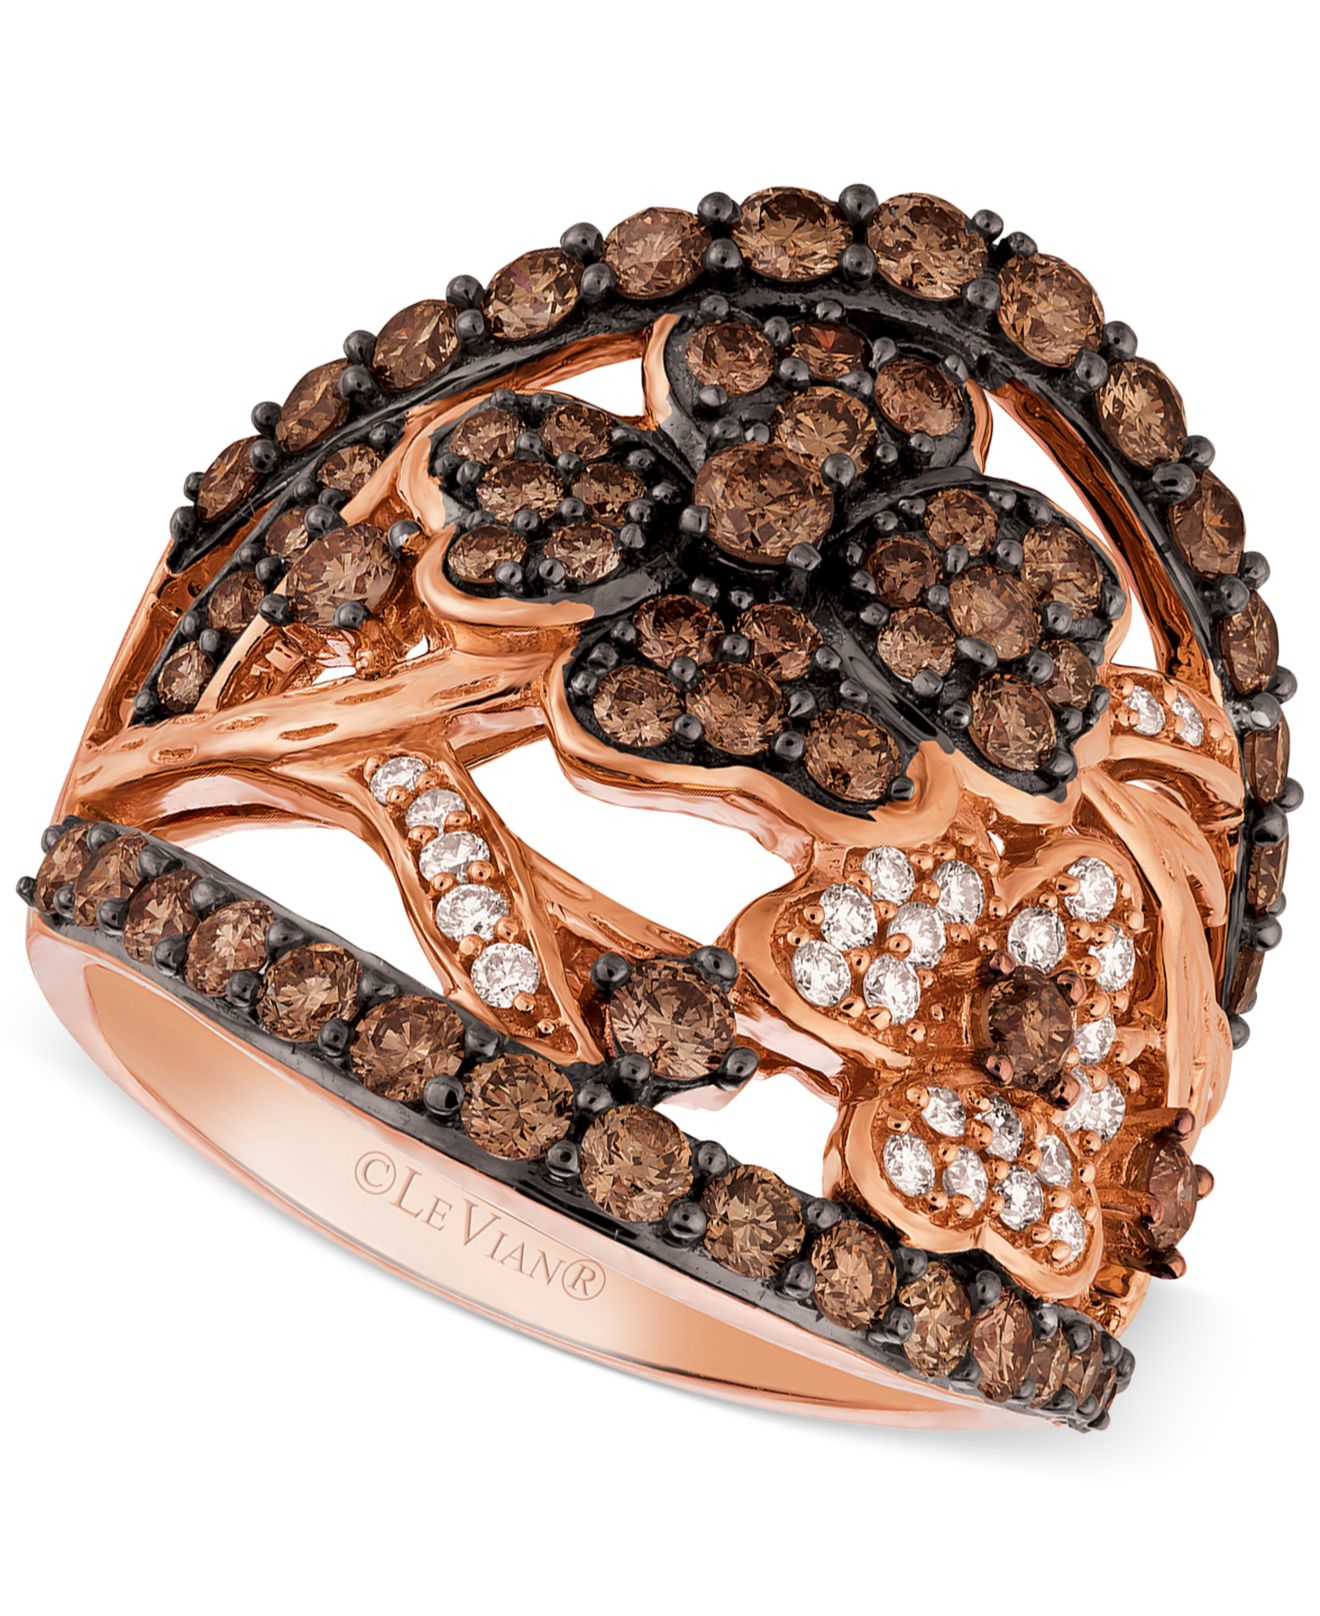 Le Vian Chocolate Flower Ring